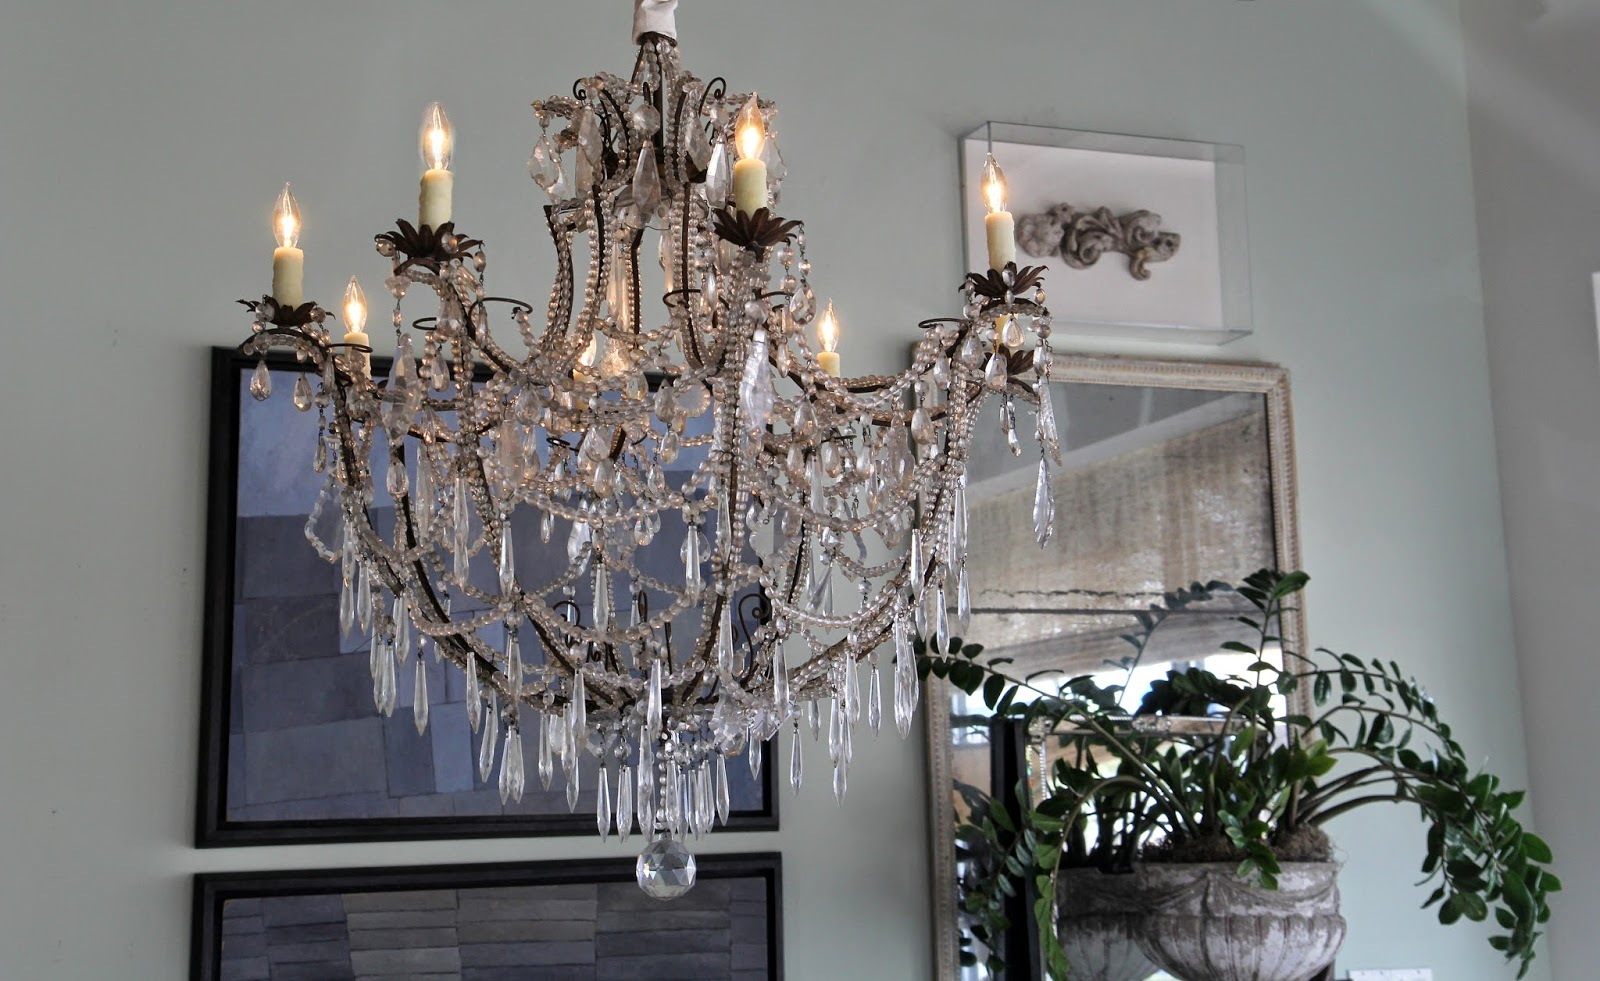 Icicle crystal chandelier; Inspirational Chandeliers and Sconces; Nora's Nest